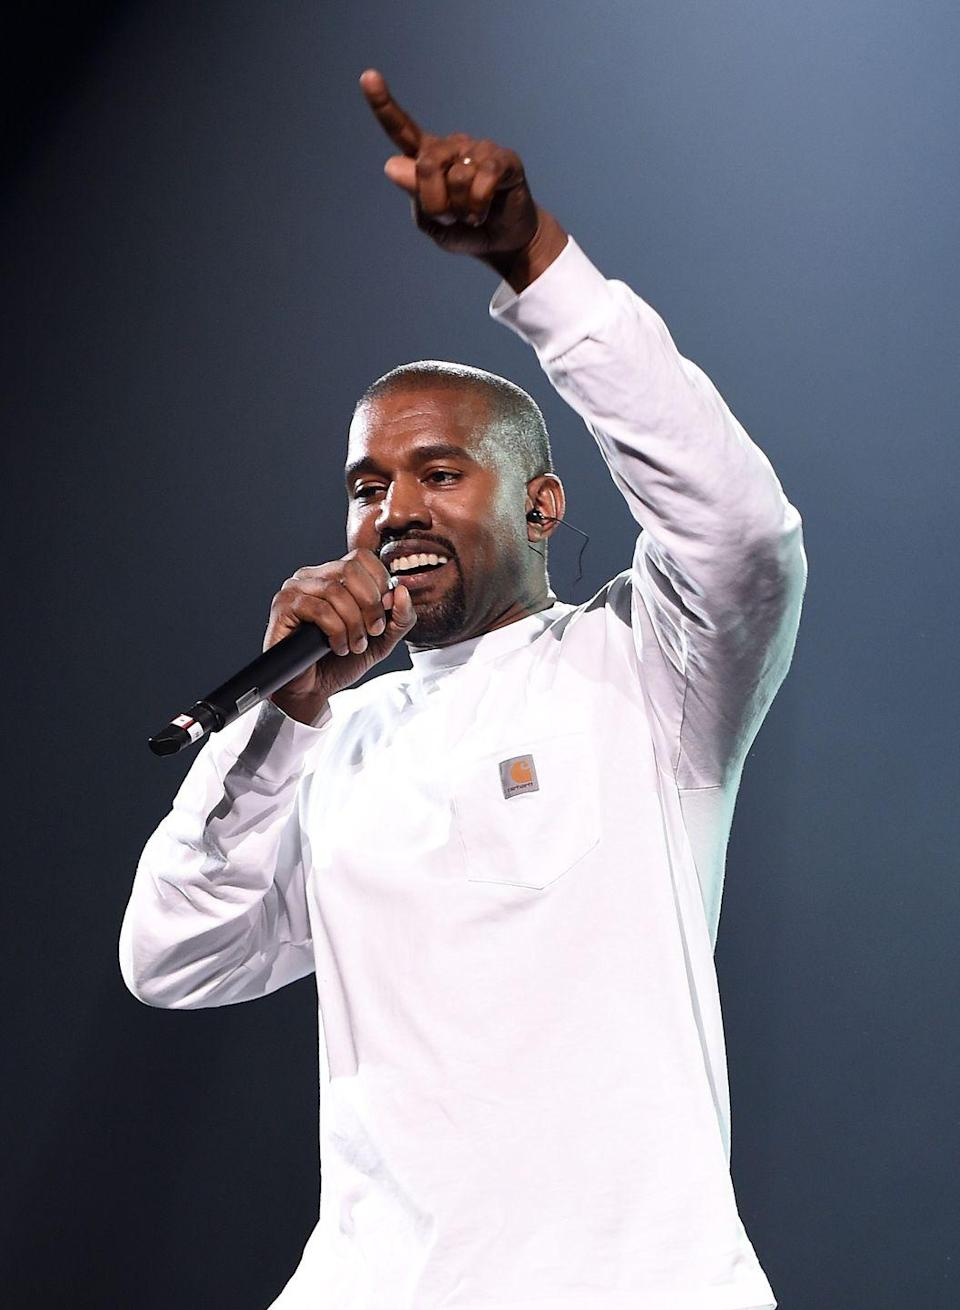 """<p>As a teen, Chicago native Kanye West worked at a Gap in the city. He wrote in an article for <em><a href=""""https://www.papermag.com/kanye-west-in-his-own-words-1427550639.html?rebelltitem=3#rebelltitem3"""" rel=""""nofollow noopener"""" target=""""_blank"""" data-ylk=""""slk:Paper"""" class=""""link rapid-noclick-resp"""">Paper</a></em> that he first started falling in love with clothes at that point. """"I don't think I had any desire to actually make clothes, but I always felt like that's what I wanted to be around. I loved the fabrics, I loved the colors, I loved the proportions,"""" he said.</p><p>In a full-circle moment, <a href=""""https://www.businessinsider.com/kanye-west-worked-at-gap-store-as-a-teen-2020-6"""" rel=""""nofollow noopener"""" target=""""_blank"""" data-ylk=""""slk:the Grammy winner and the clothing company"""" class=""""link rapid-noclick-resp"""">the Grammy winner and the clothing company</a> announced they were teaming up for the new Yeezy line, scheduled to hit stores in 2021. </p>"""